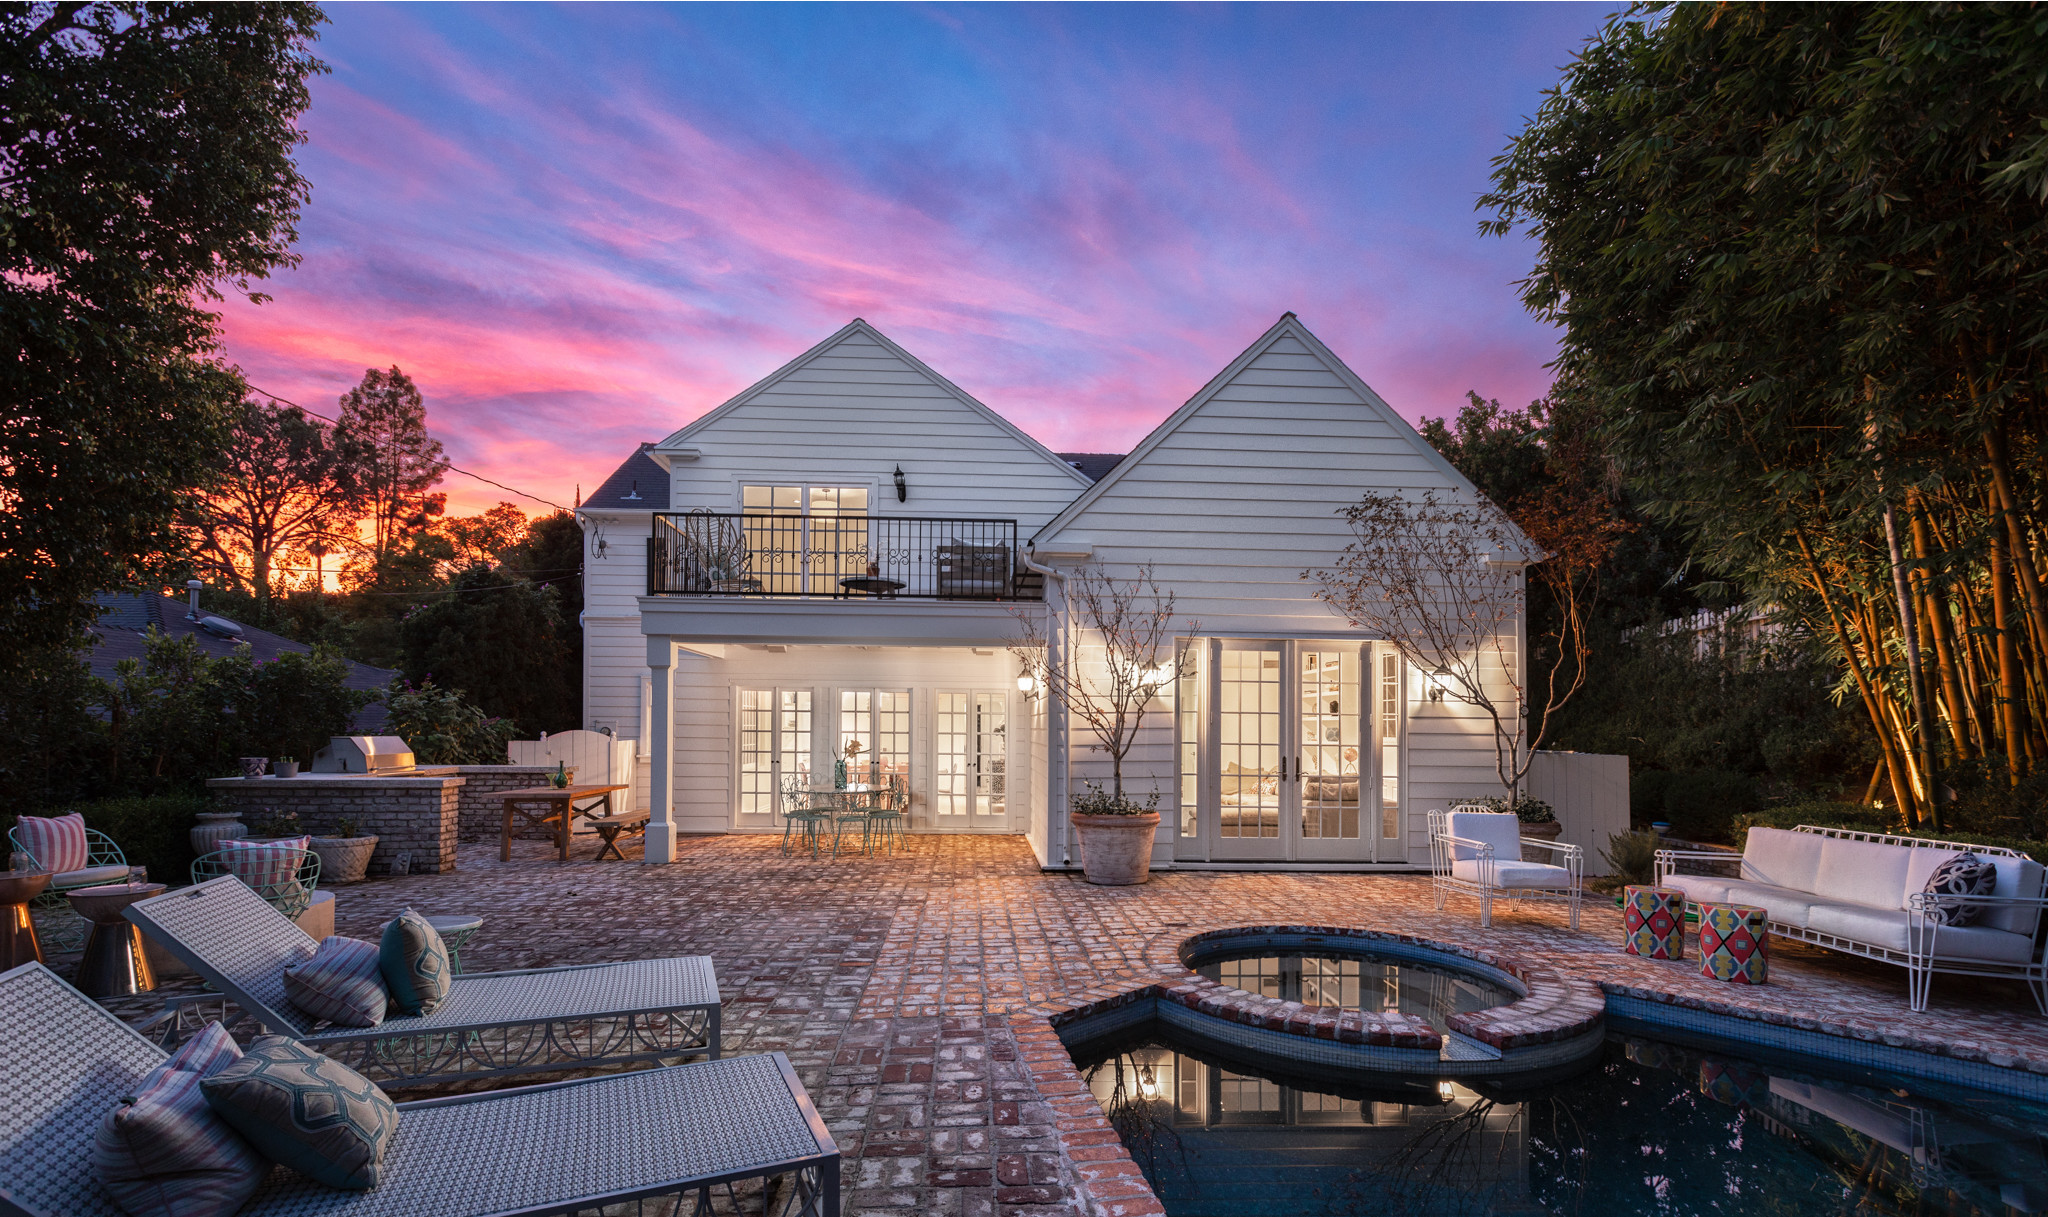 Bette Midler's onetime Hollywood Hills home hits the market with a new look